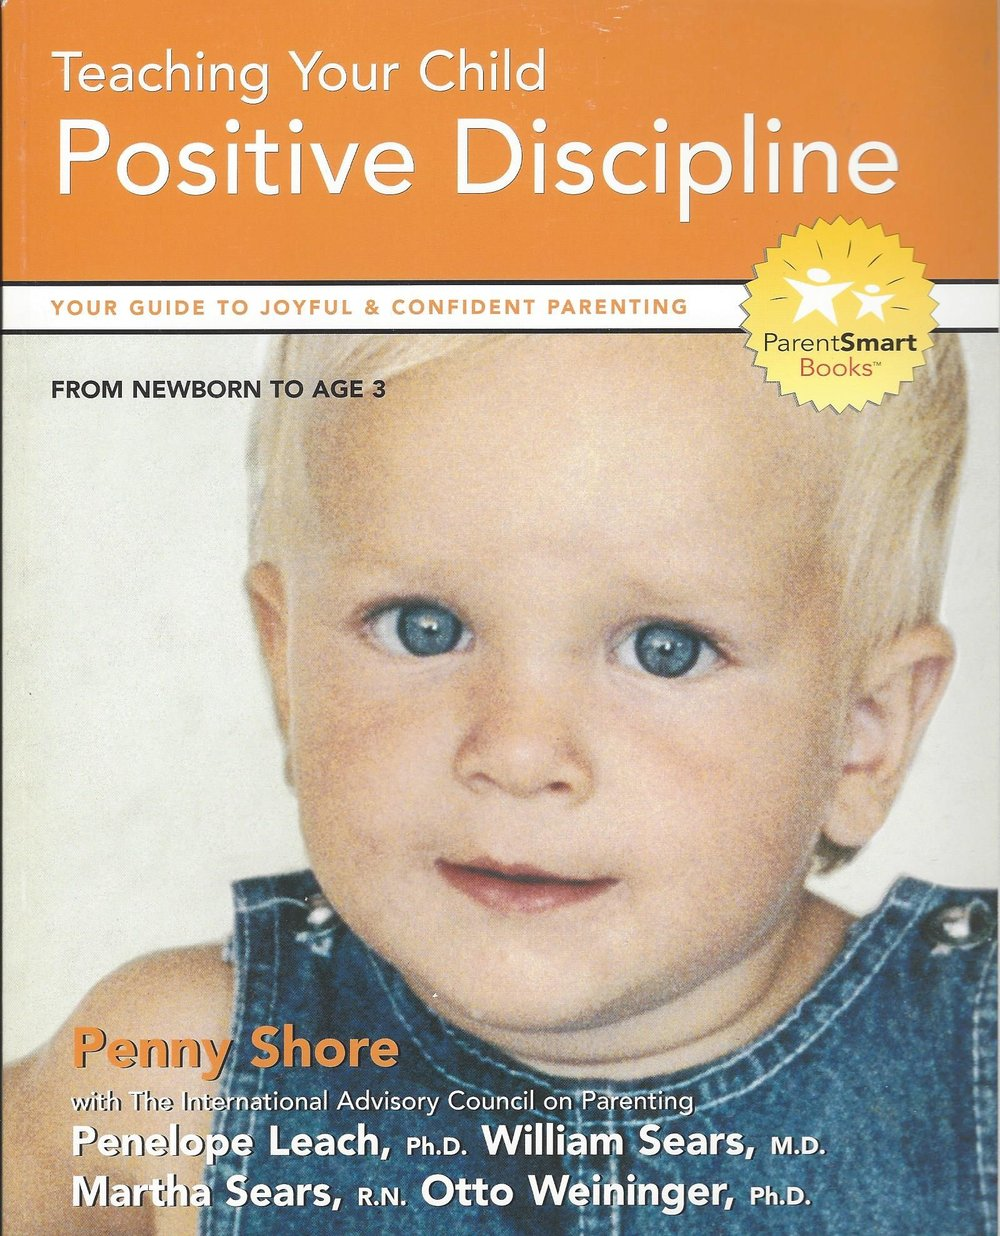 - Teaching Your Child Positive DisciplineBy Penny Shore with Penelope Leach, Ph.D., William Sears, M.D., Martha Sears, R.N., Otto Weininger, Ph.D.